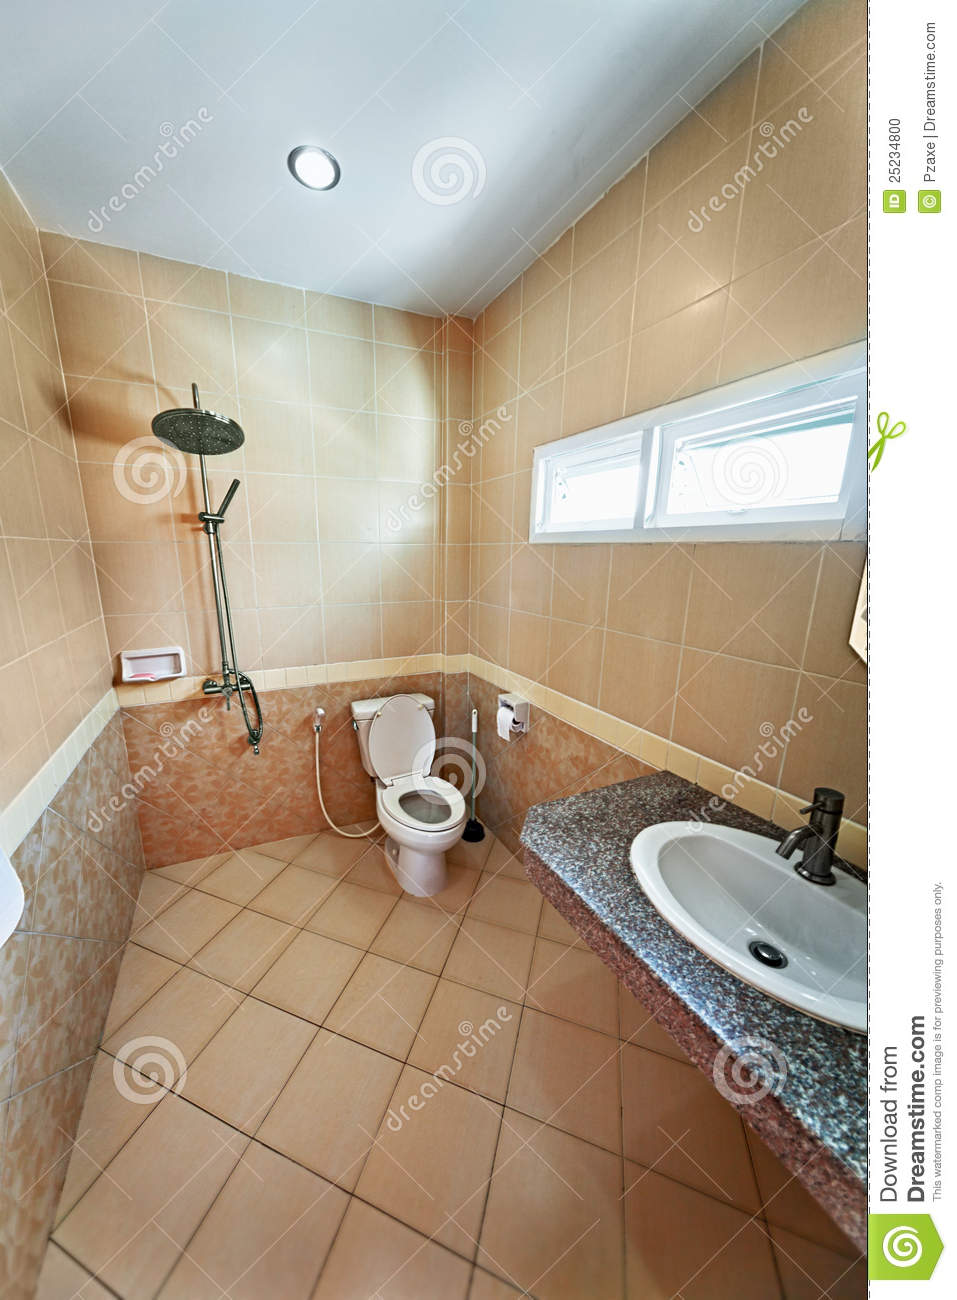 iinterior of beige bathroom with shower stock photo. Black Bedroom Furniture Sets. Home Design Ideas